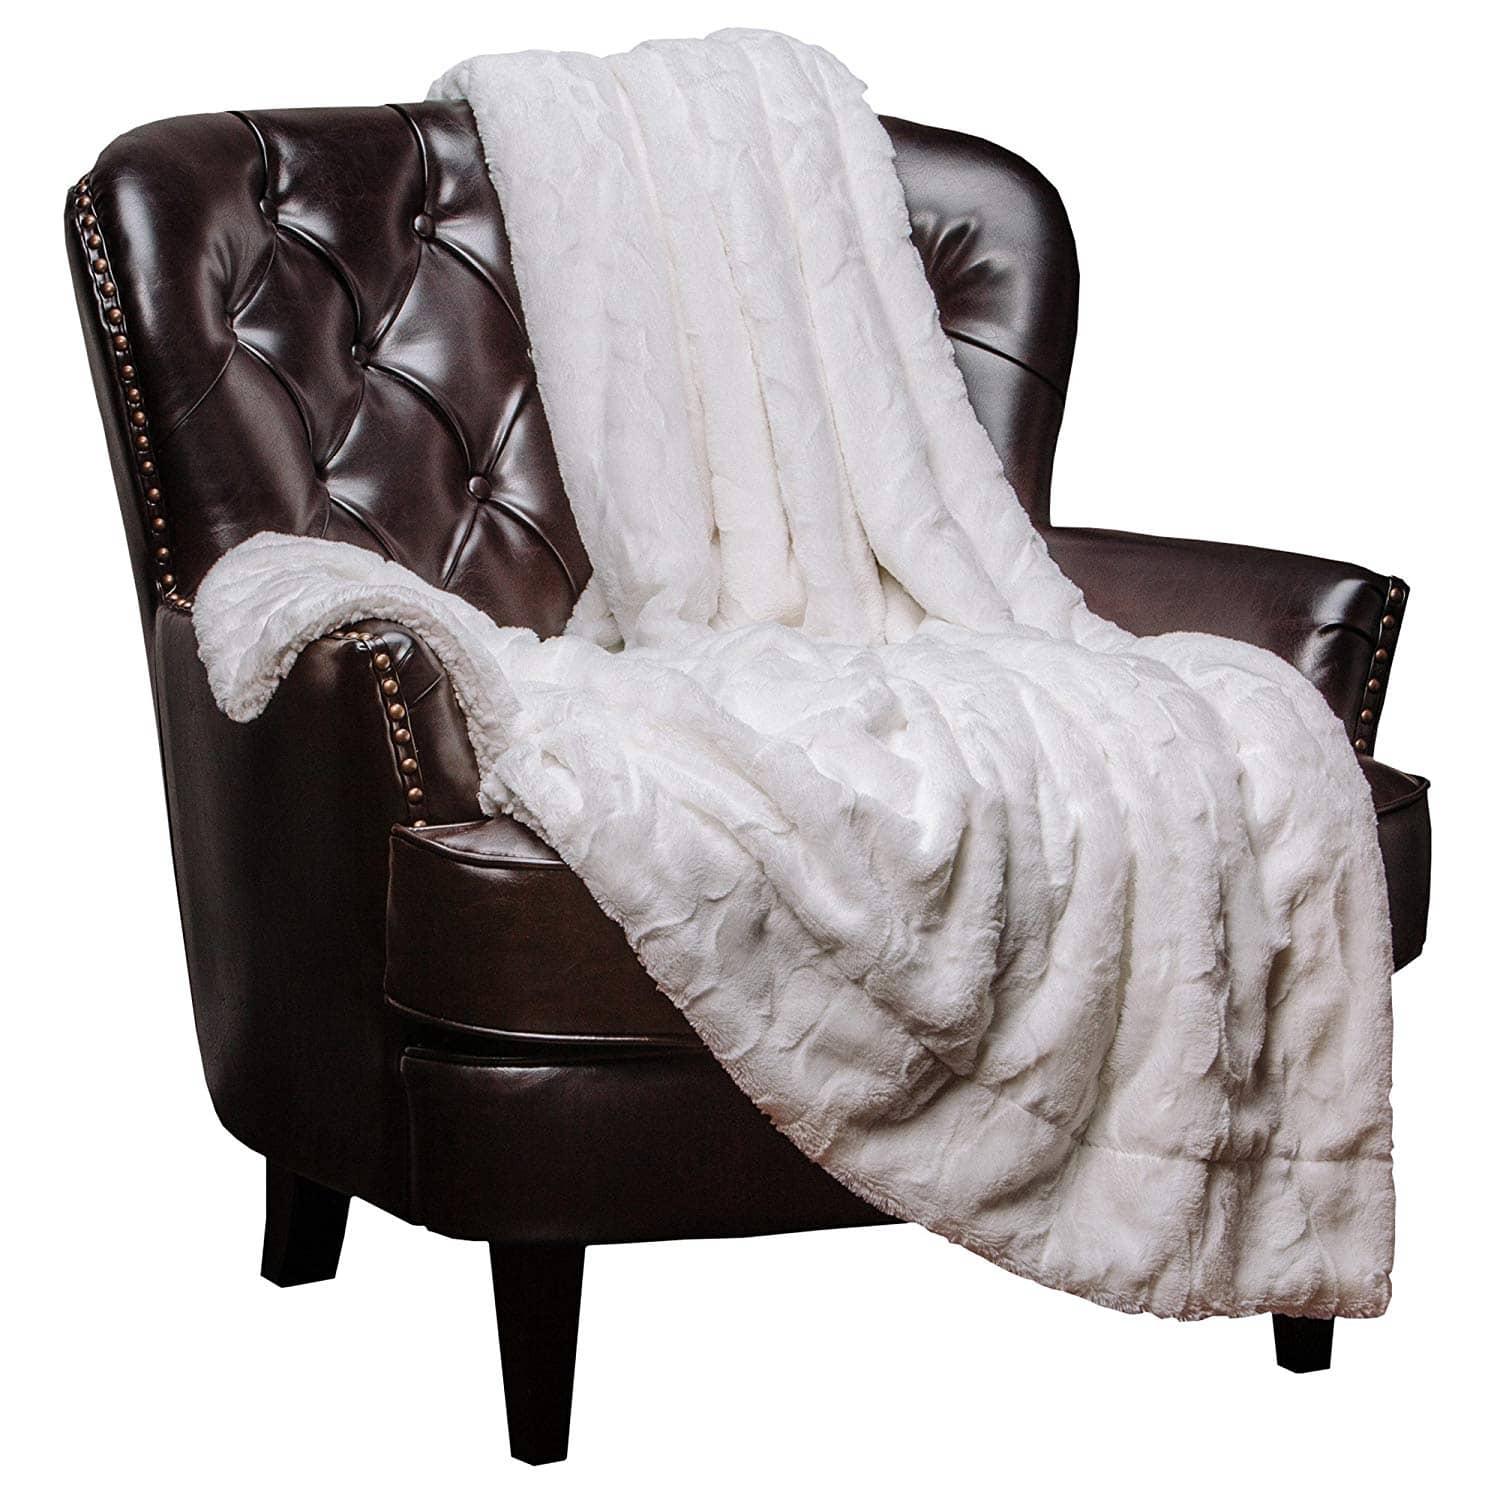 Chanasya Fuzzy Faux Fur Throw Blanket - Soft Light Weight Blanket 60x70 $23 Various Colors